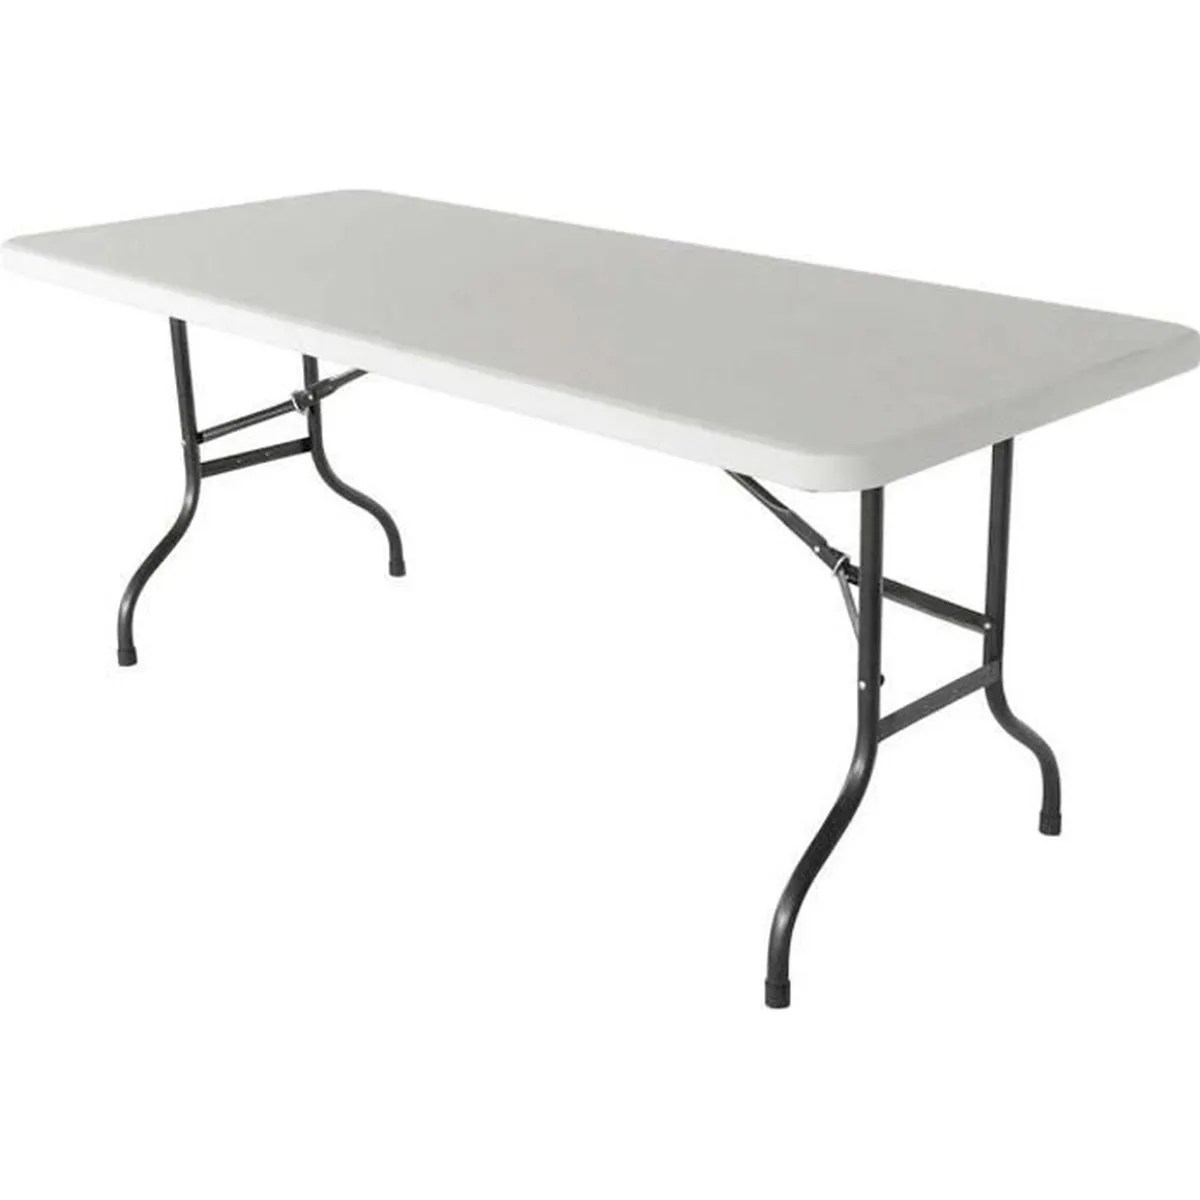 Table D'appoint Pliante Castorama Table Pliante D 39appoint 200 Cm Table Pliable 8 Places